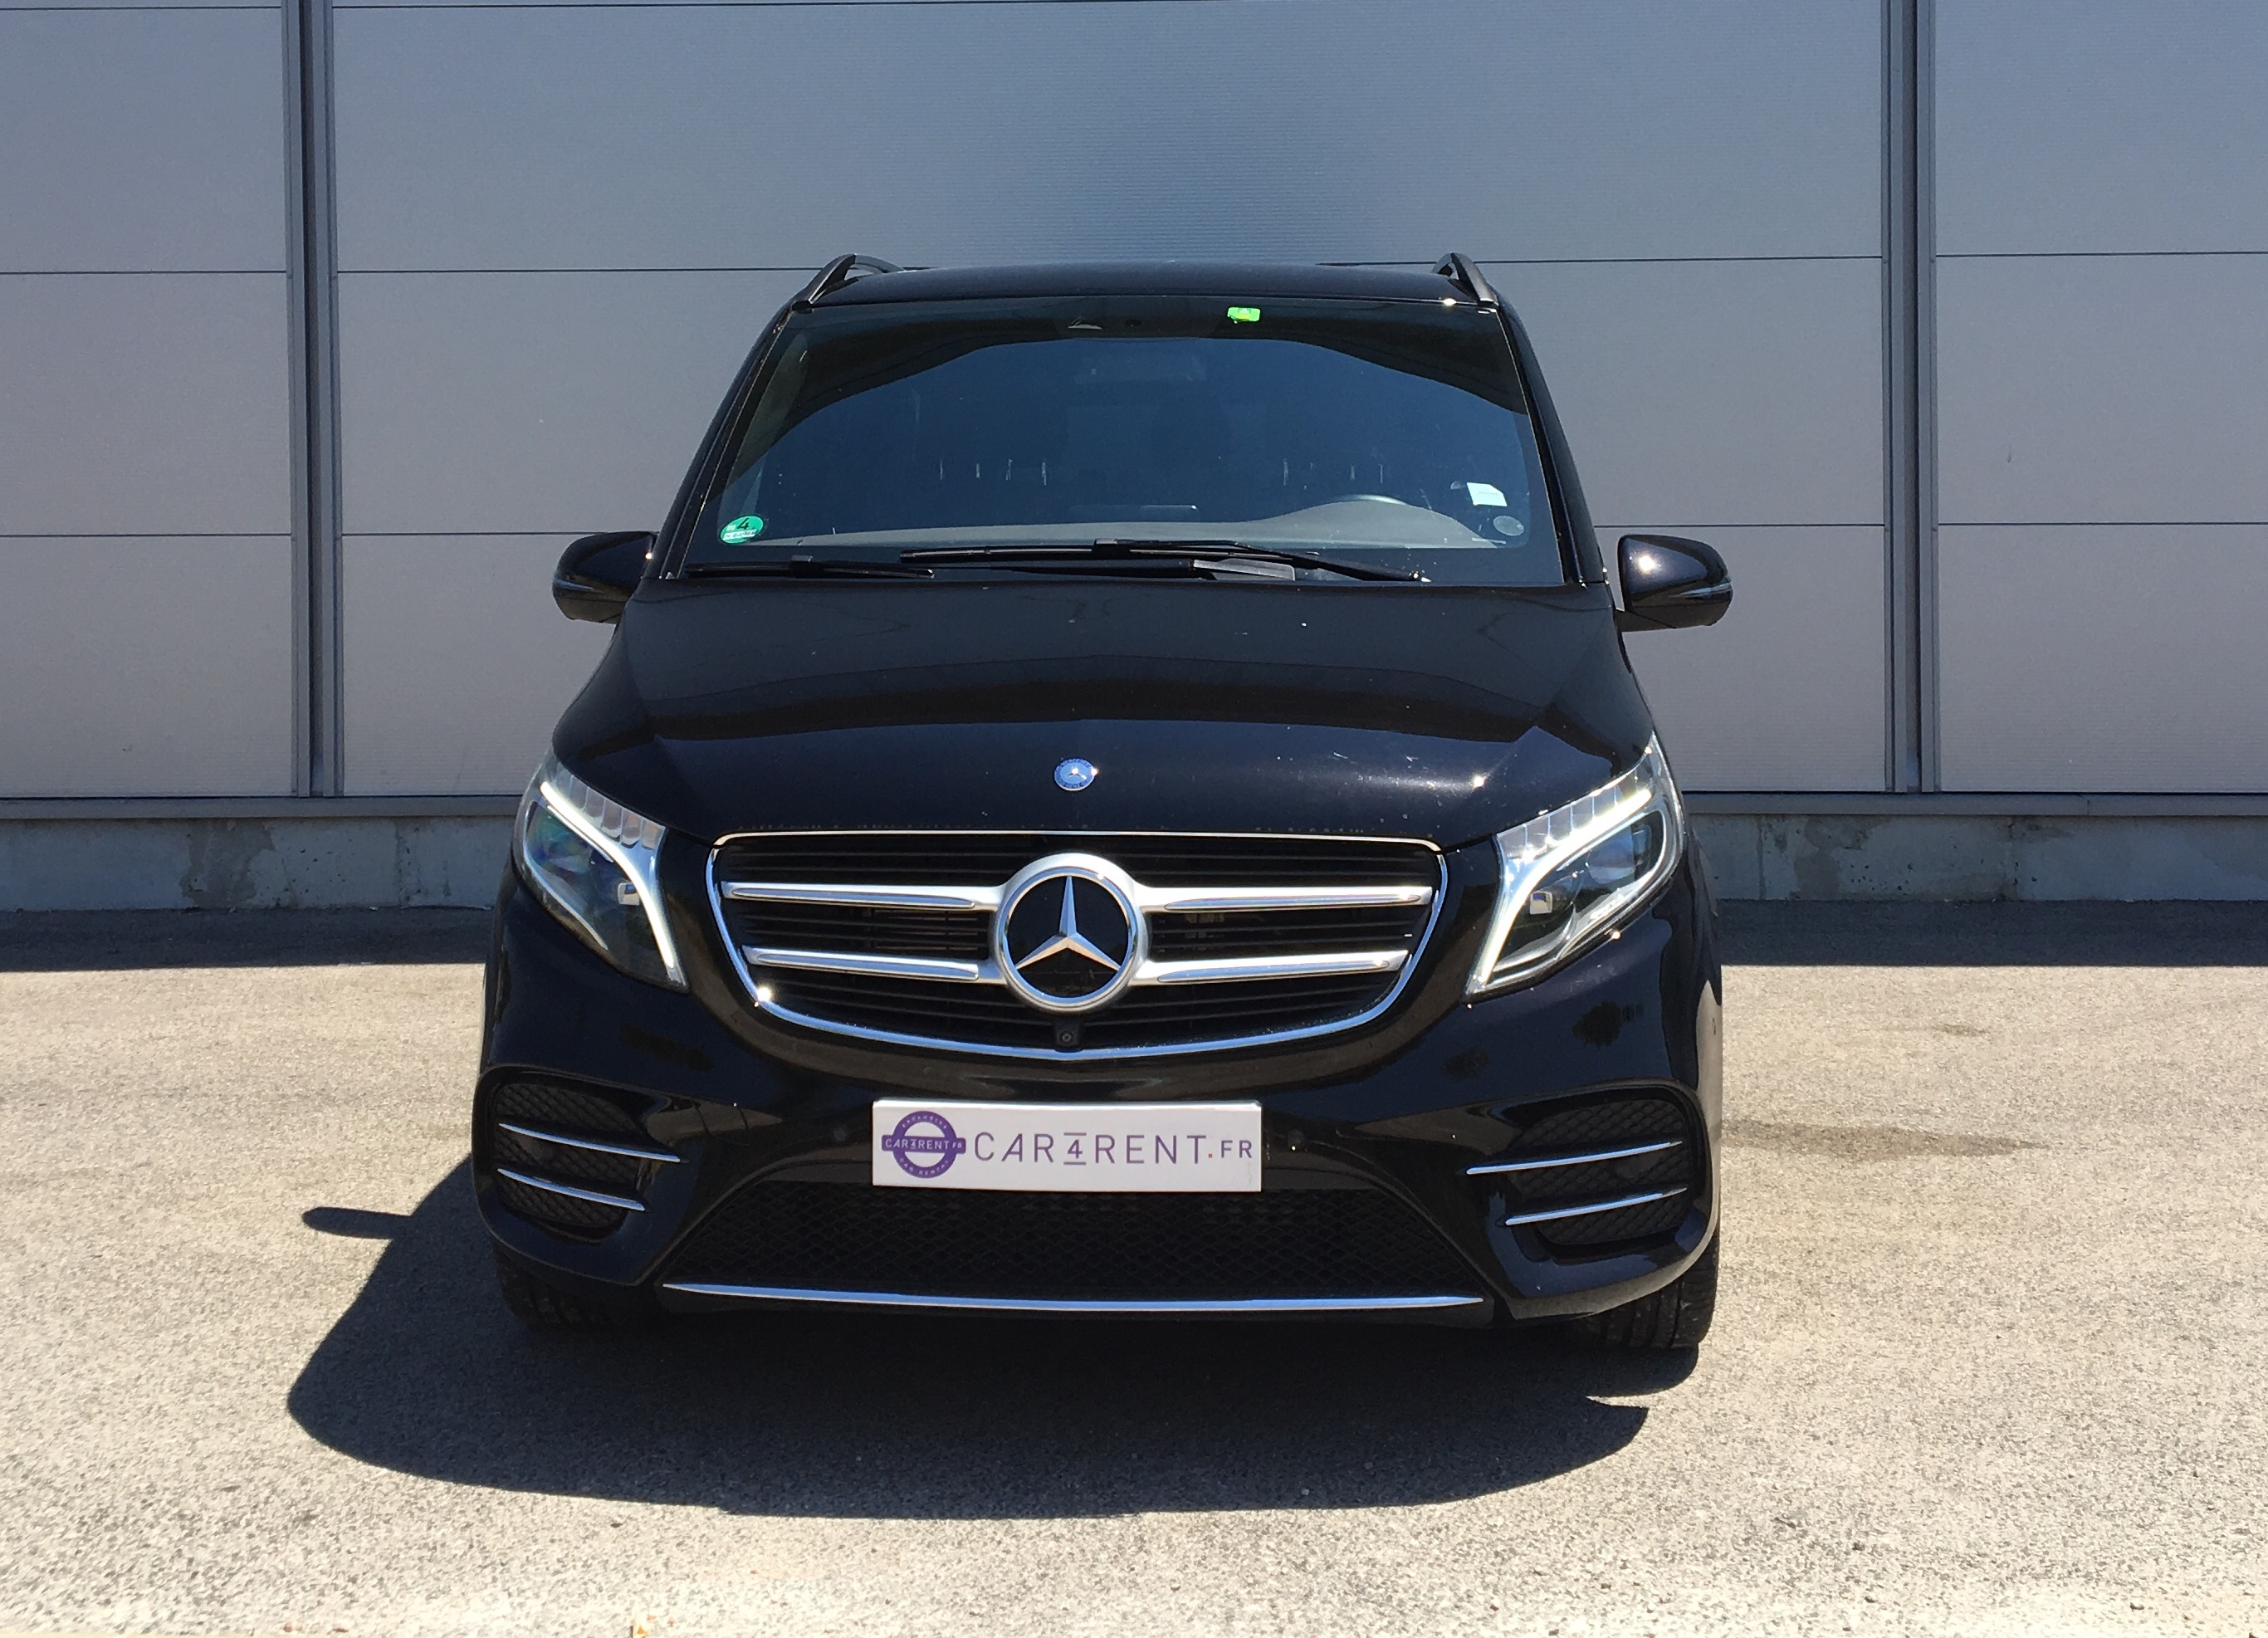 louer mercedes classe v france Car4rent Location voiture luxe